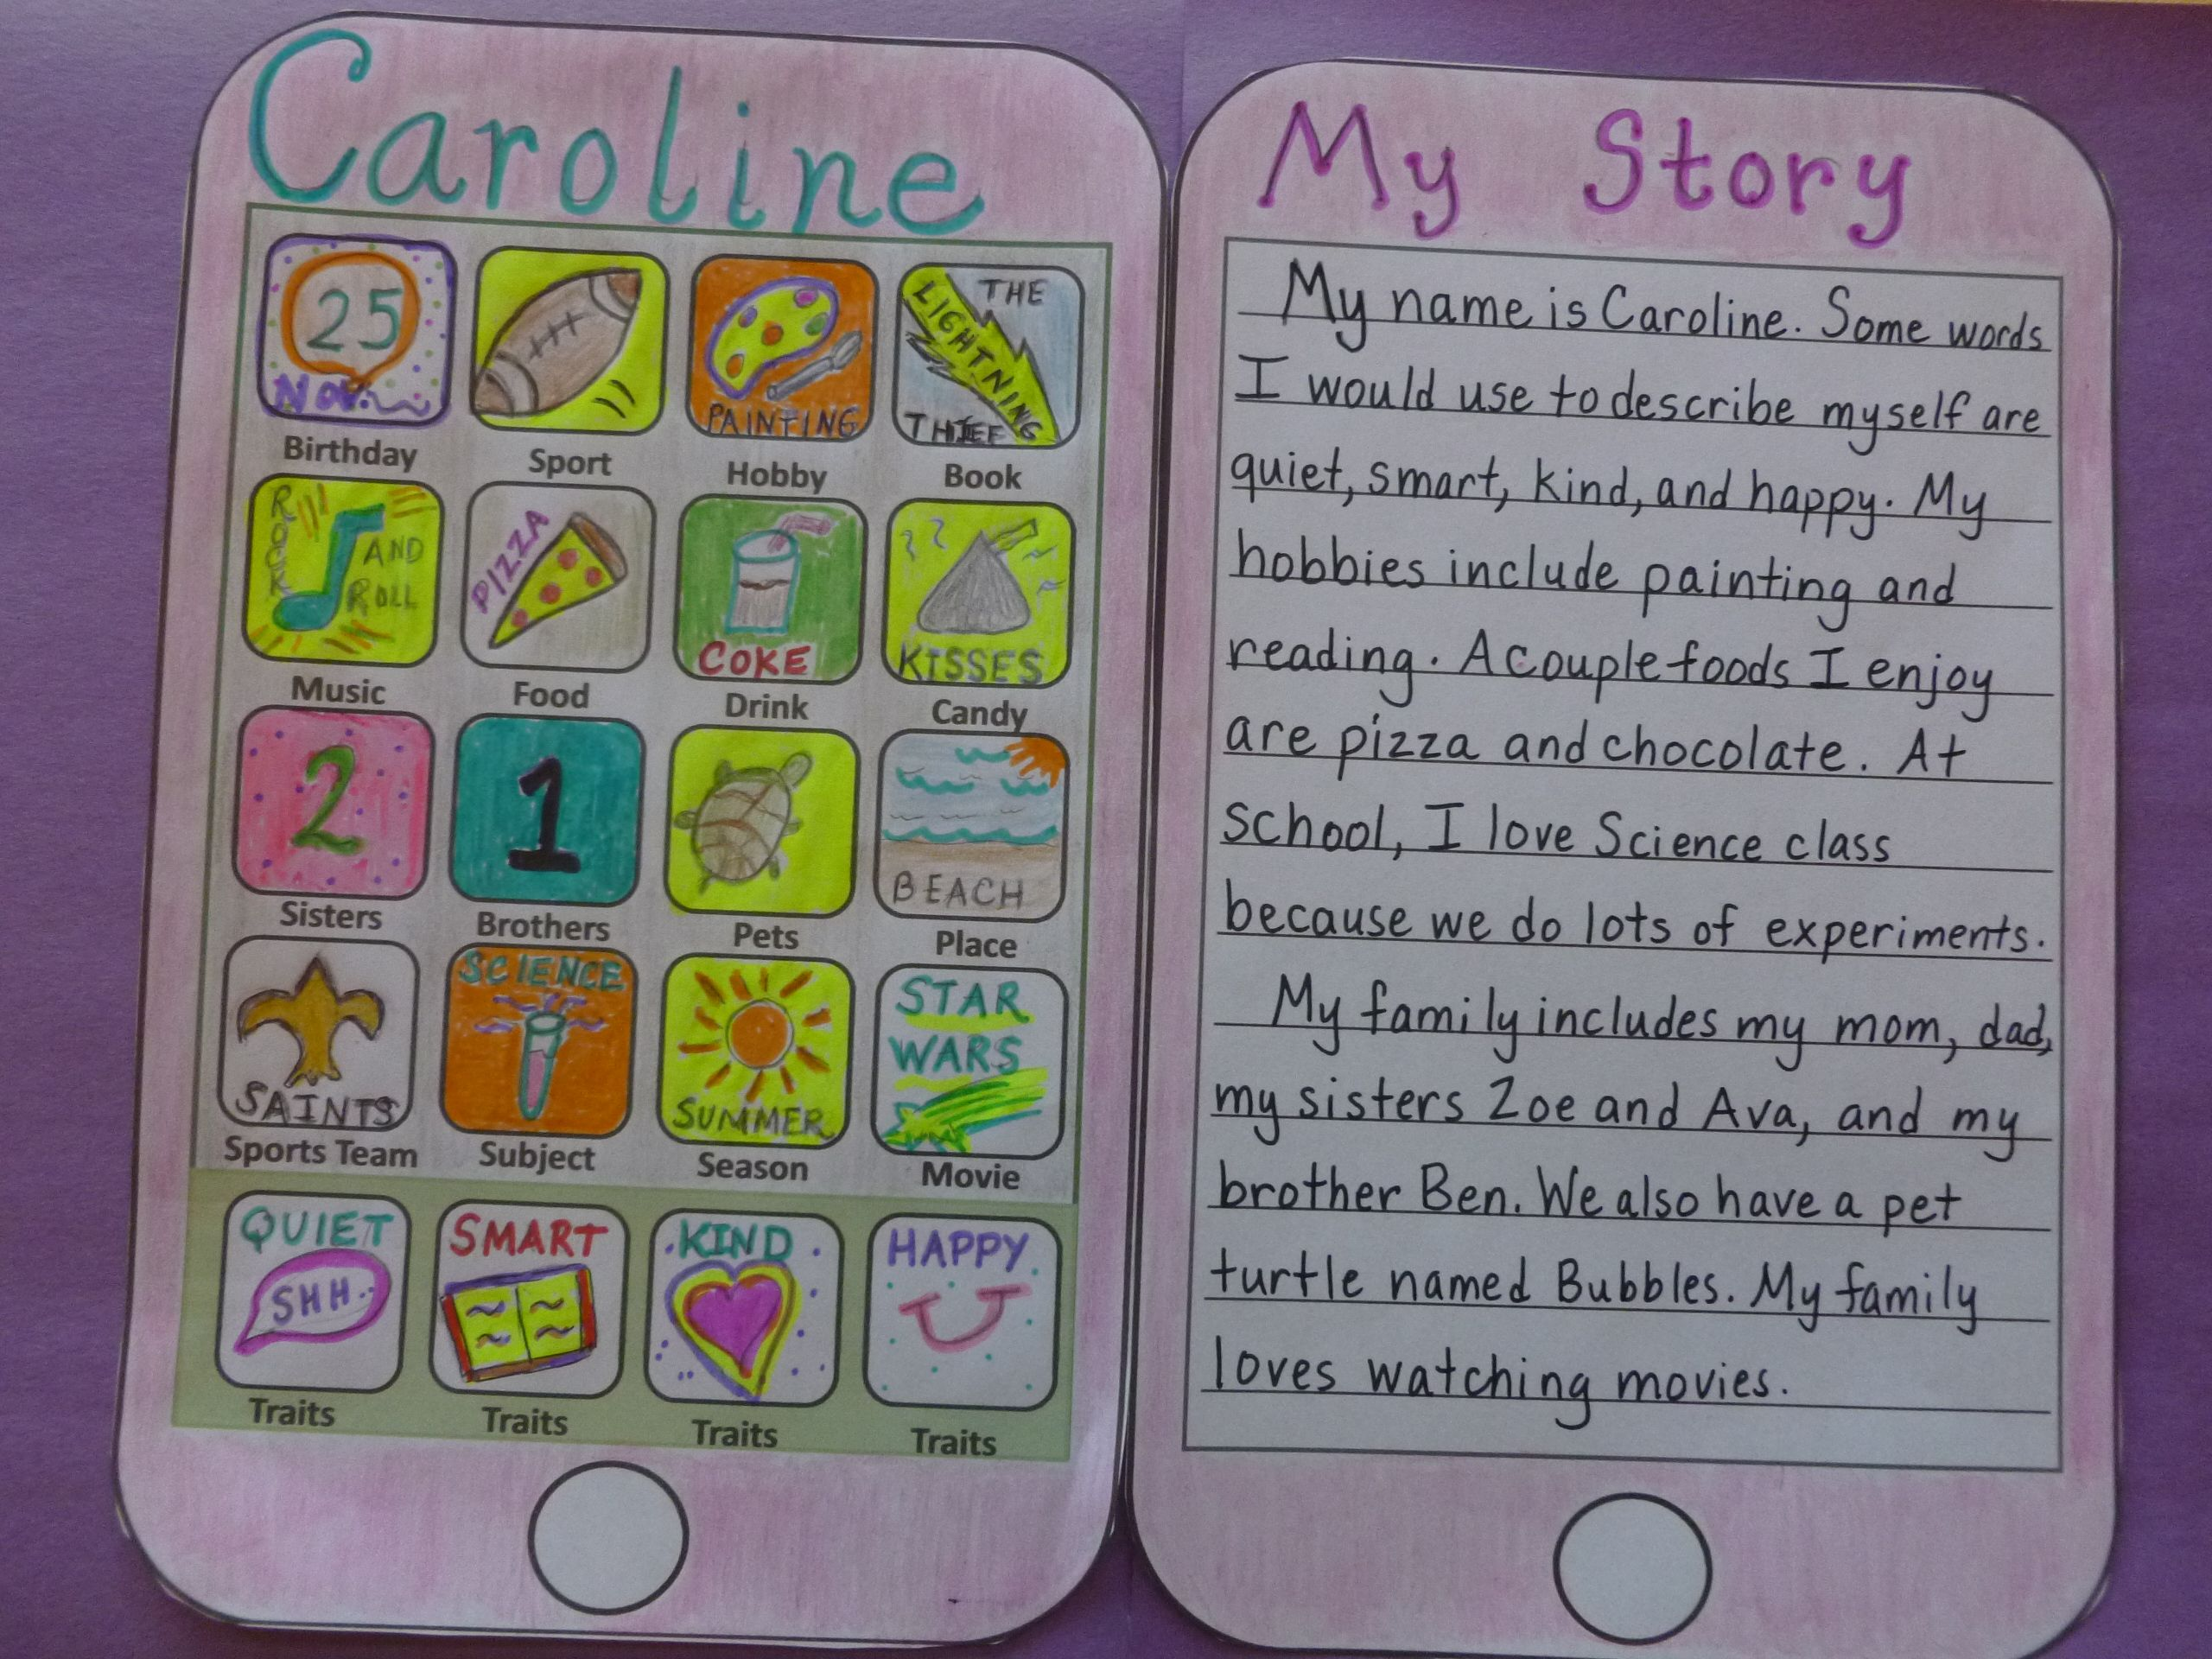 Fun Back To School Craft Design Your Own Cellphone Apps To Describe